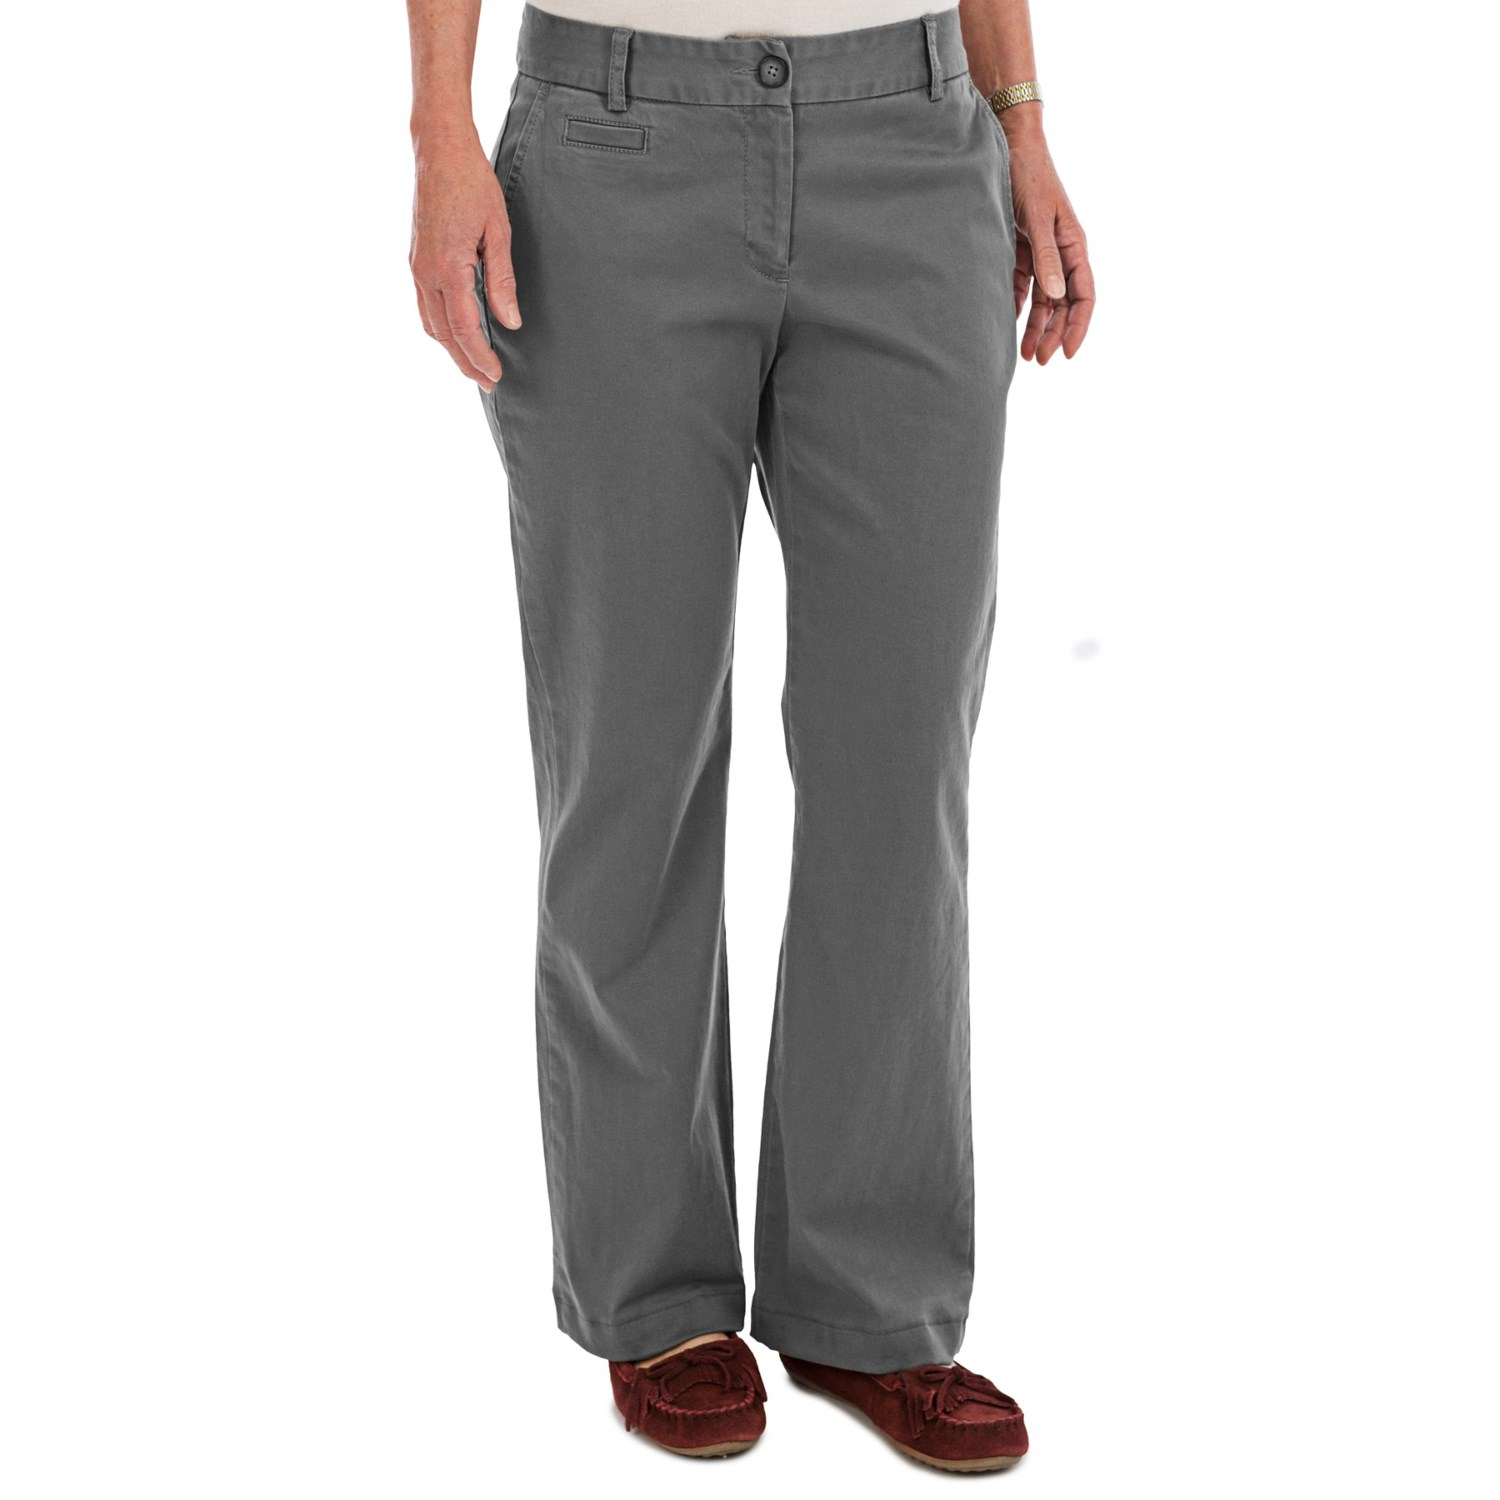 Amazing Woolrichs Alderglen Flannel Lined Chino Pant Is A Coldweather Essential That You Wont Want To Take Off This Pant Is Designed With Heritage Styling And Teams Perfectly With Everything In Your Wardrobe Flannellined Front And Welted Back